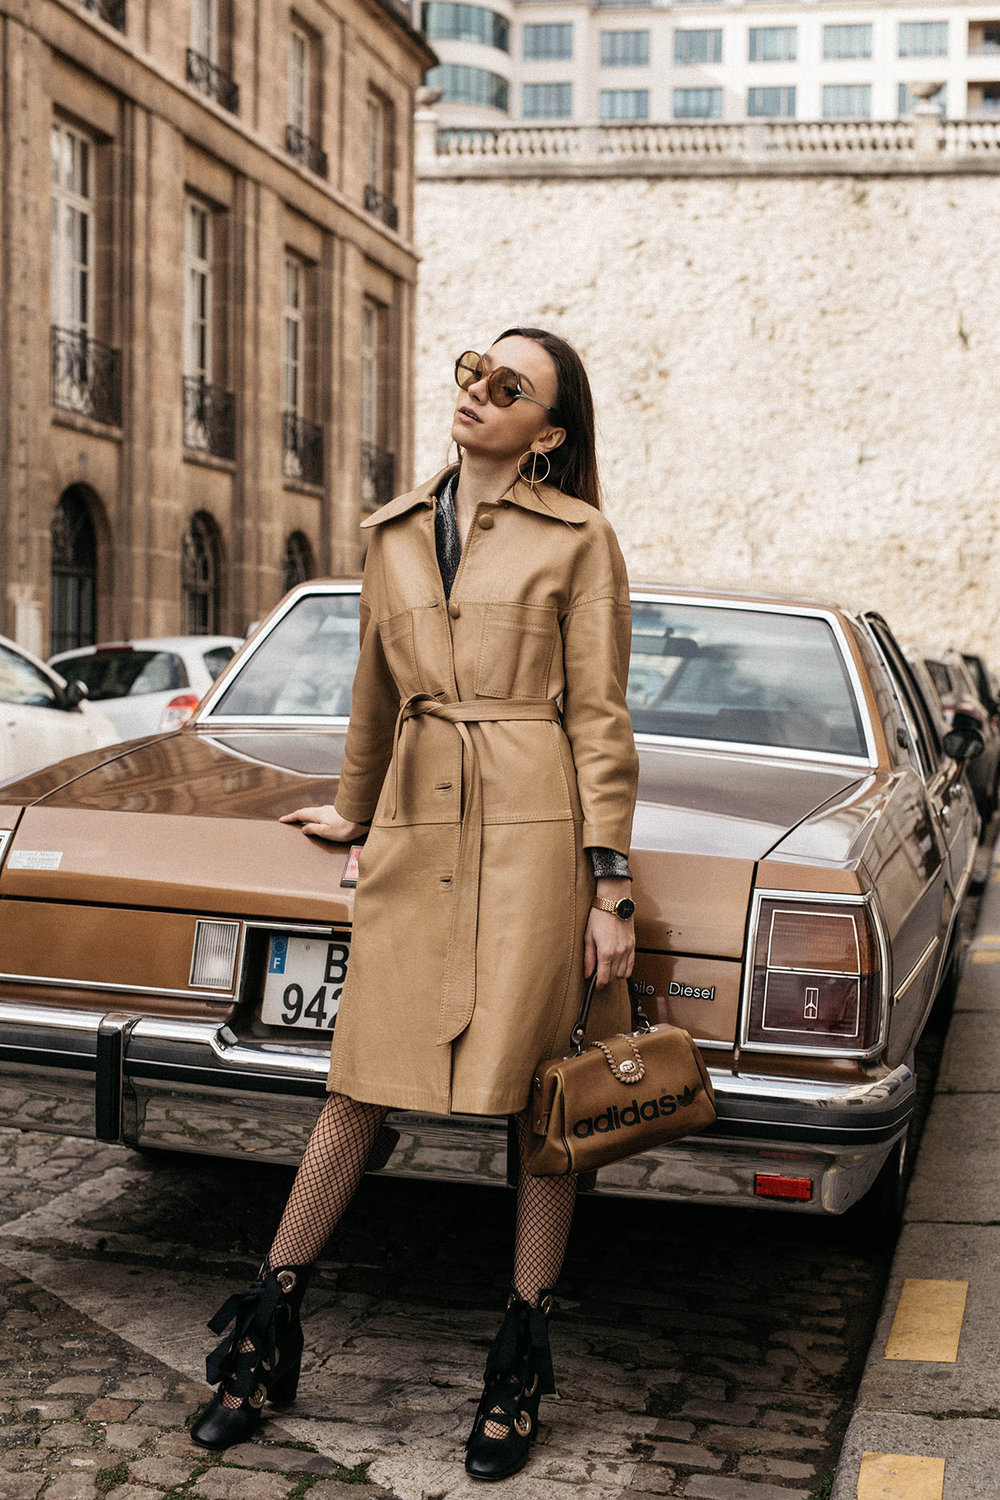 70s-vintage-car-style-editorial-fishnet-tights-miista-lace-up-boots-thefashioncuisine-7.jpg